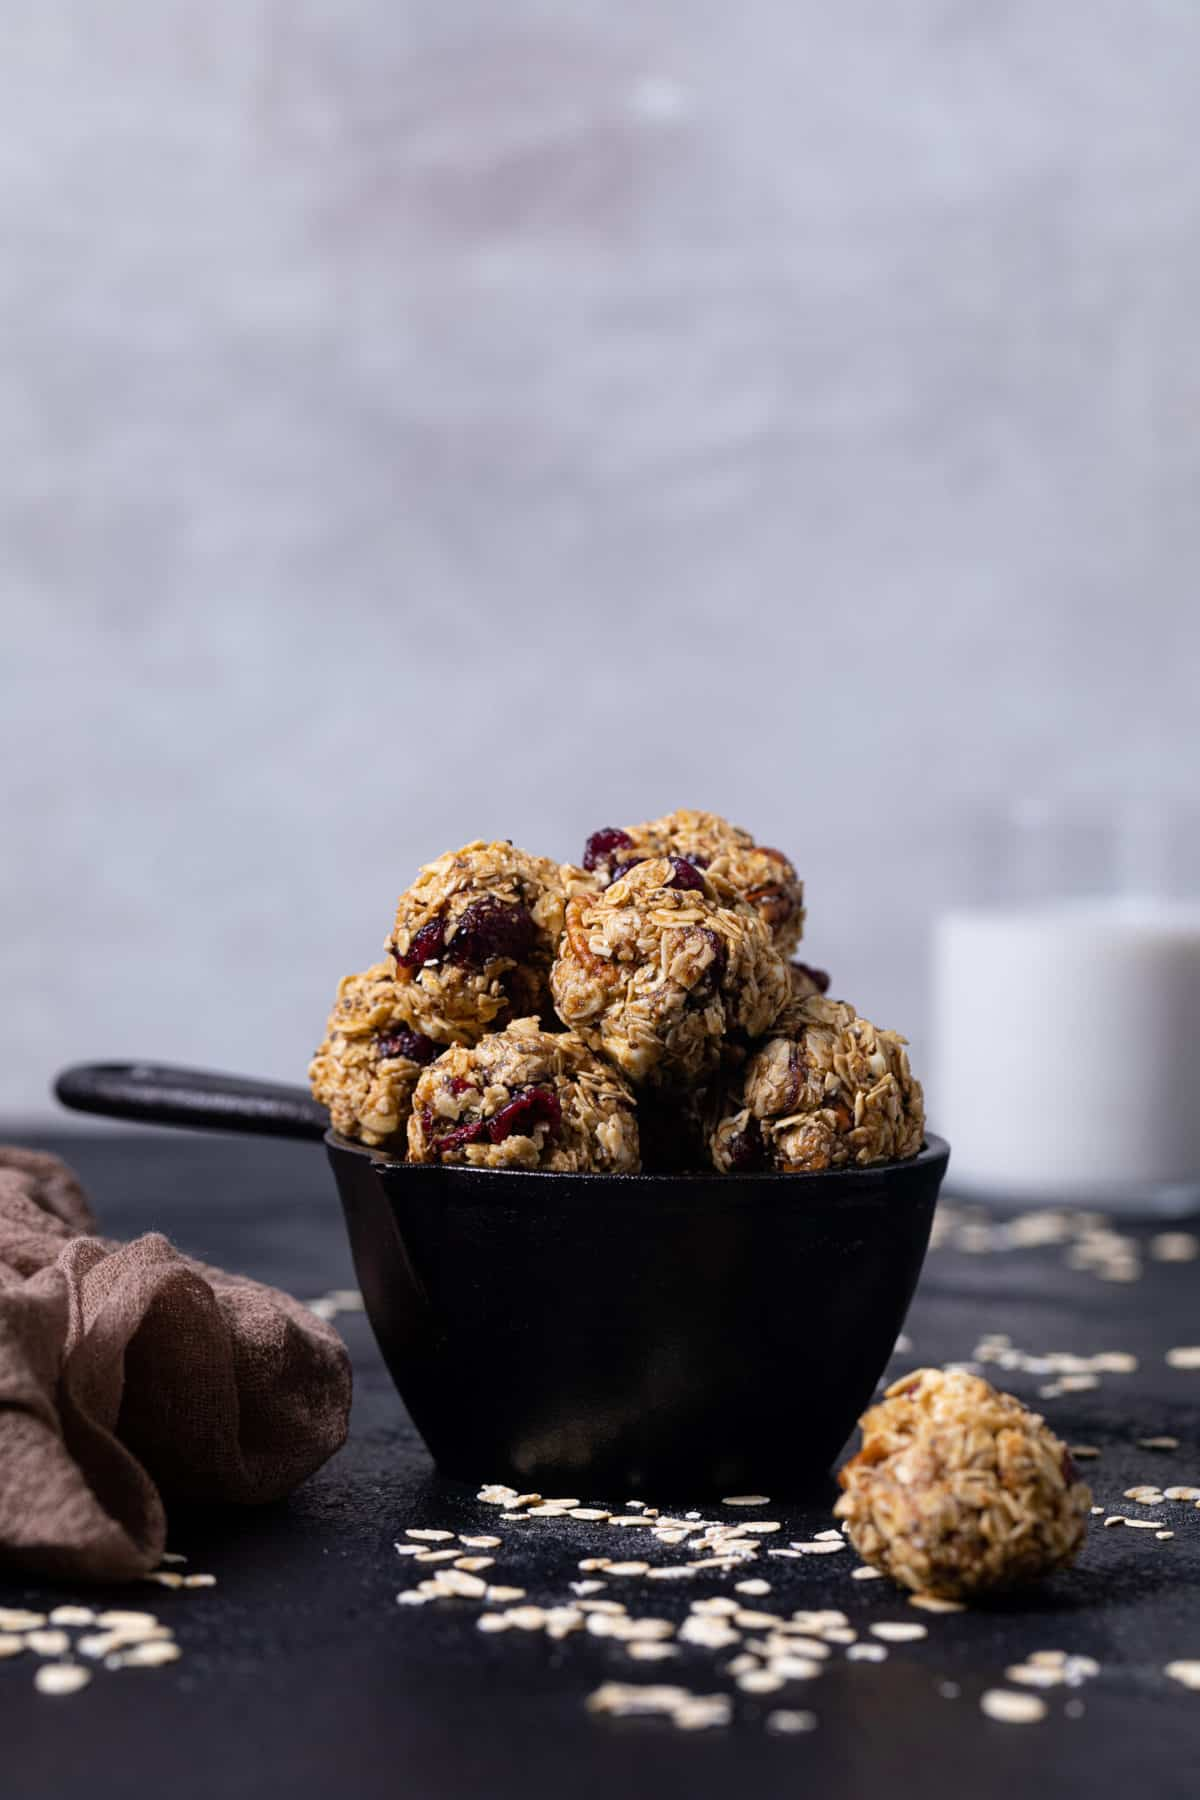 White Chocolate Cranberry Energy Bites in a black measuring cup on a black table